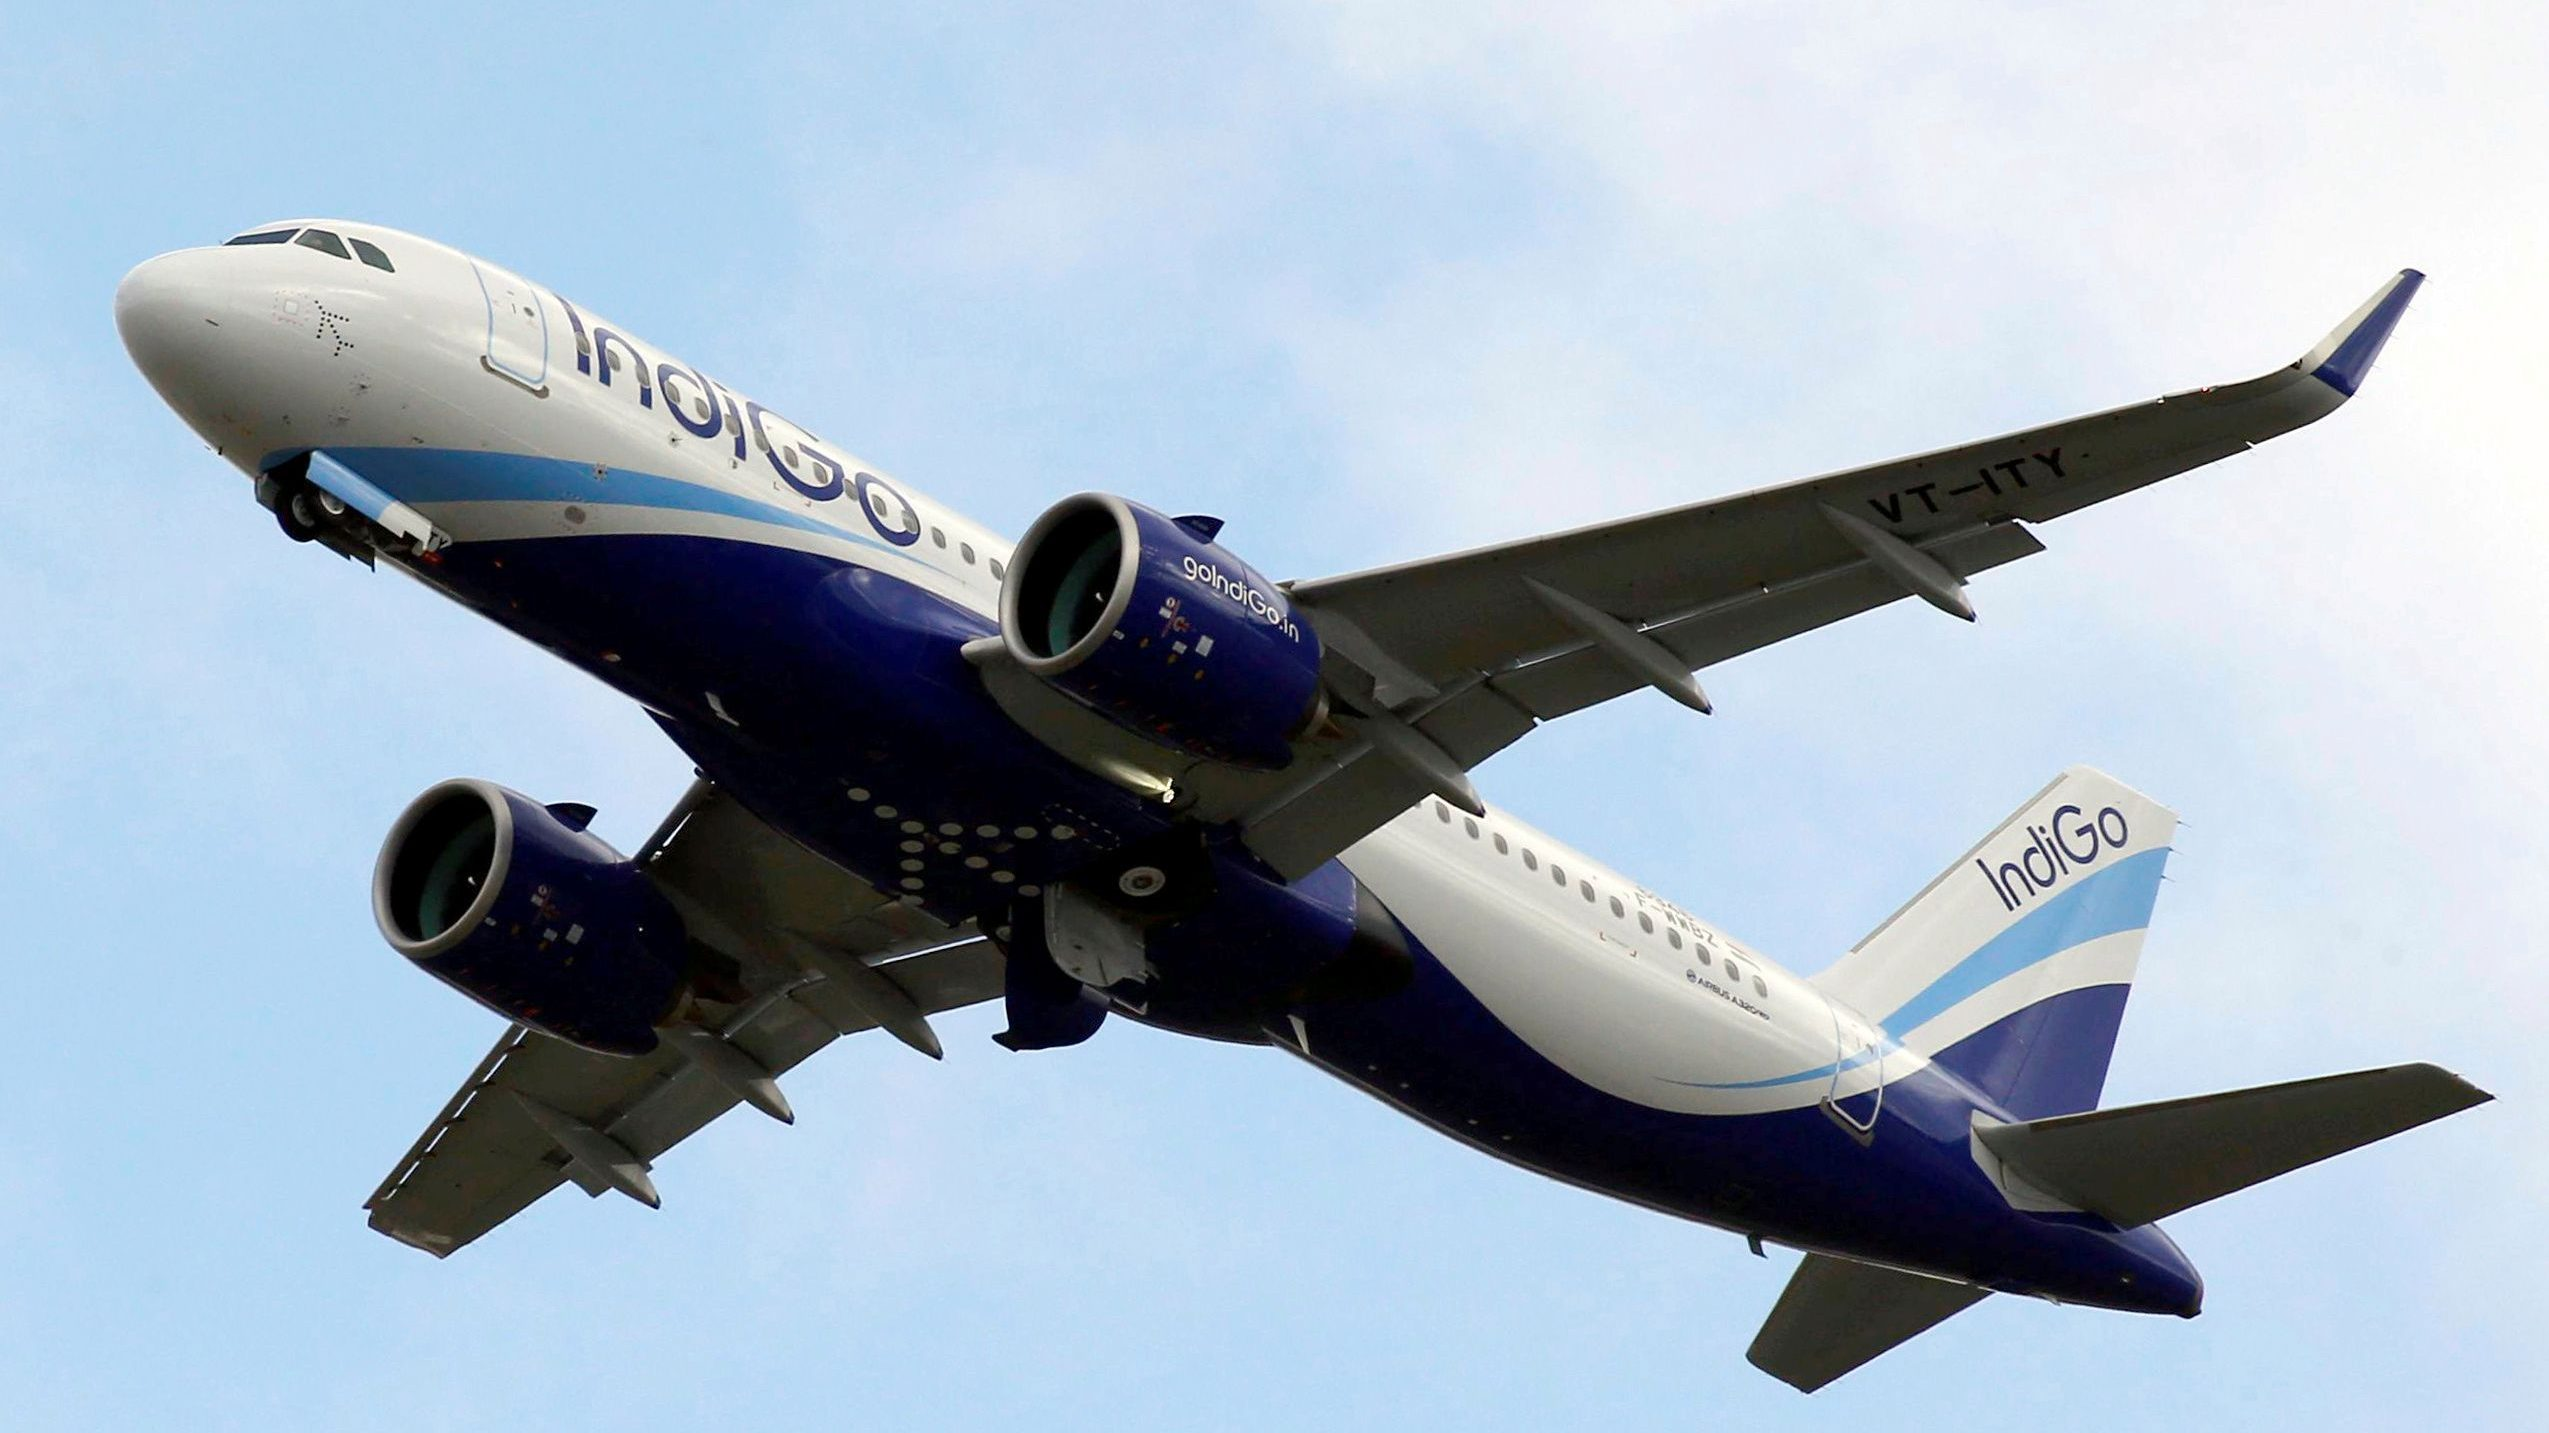 Indigo CEO Ronojoy Dutta is an IIT and United Airlines